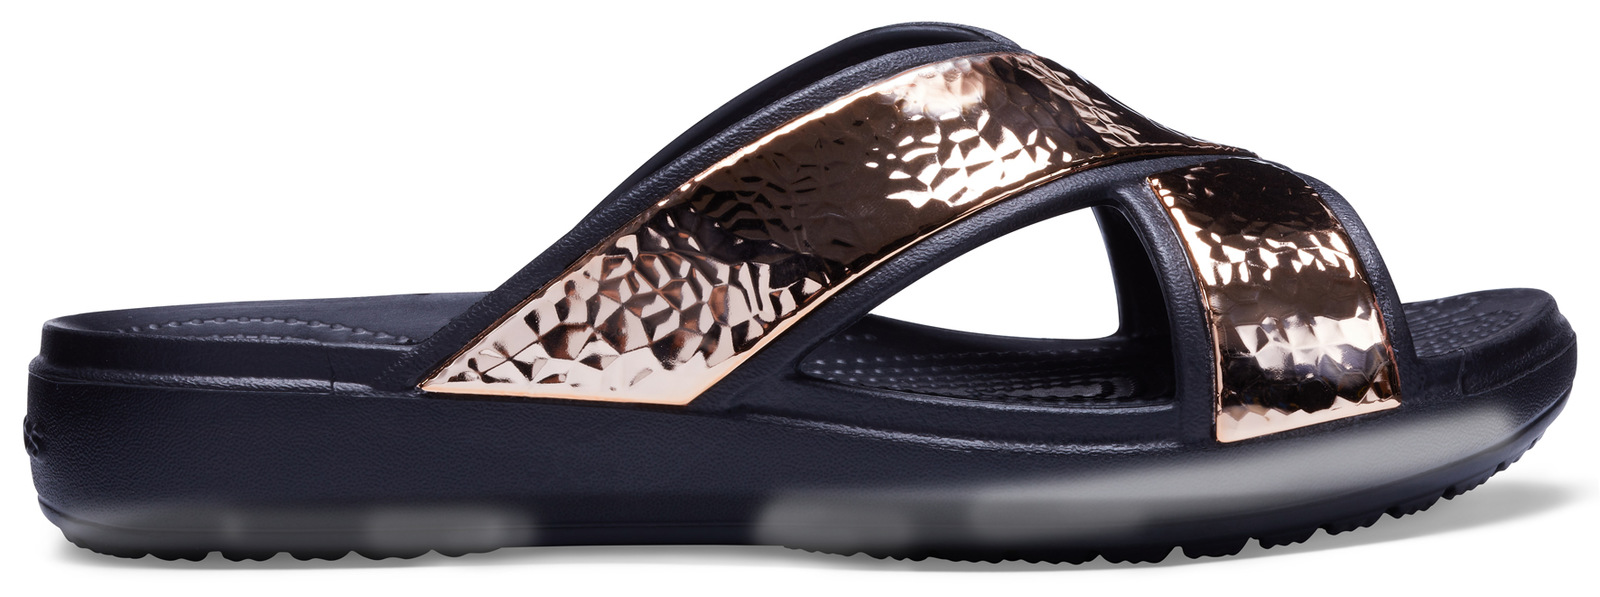 Crocs černé pantofle Sloane Hammered XSTRP Slide Black/Rose Gold